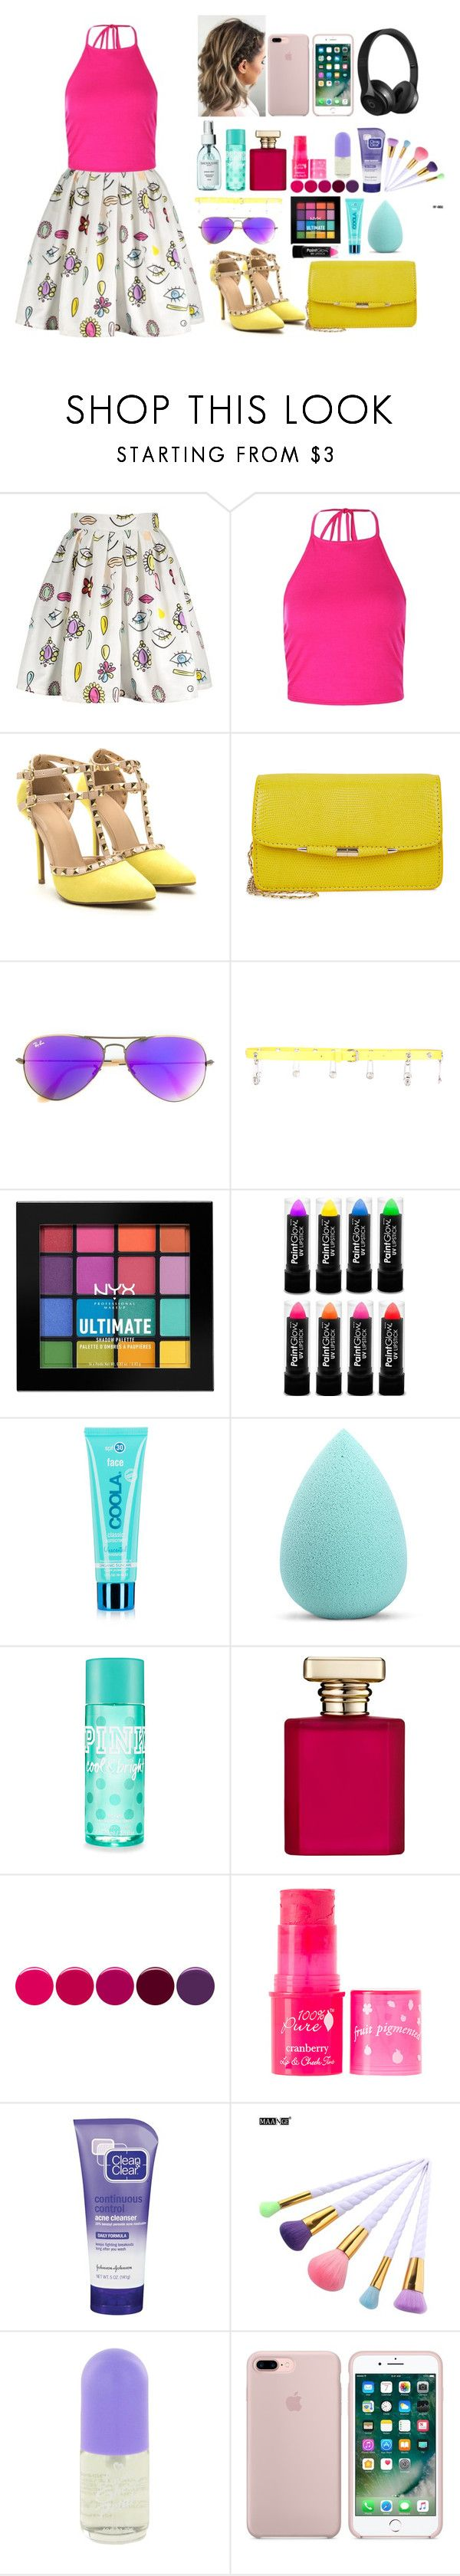 """""""Untitled #23"""" by danazena ❤ liked on Polyvore featuring Boohoo, Ray-Ban, Versus, NYX, COOLA Suncare, My Makeup Brush Set, ORMONDE JAYNE, Deborah Lippmann, 100% Pure and Clean & Clear"""